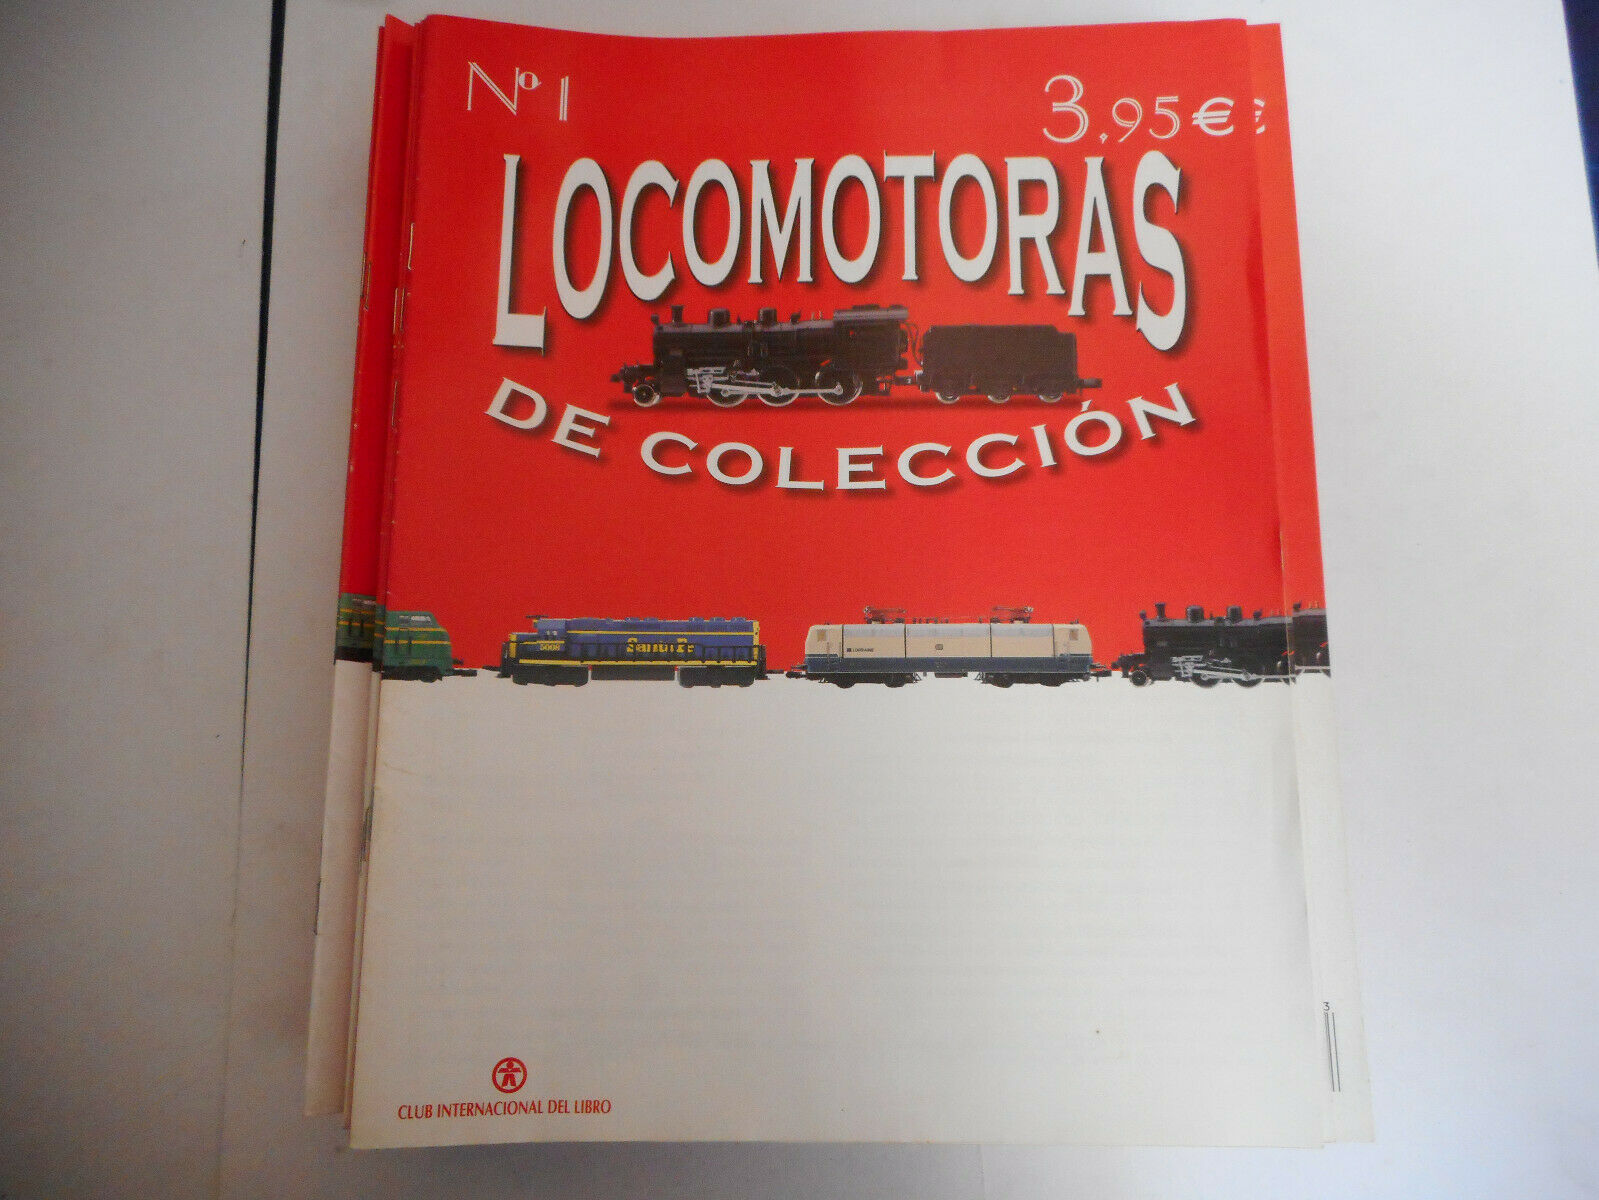 COLECCION LOCOMOTORAS COLECCION 50 MAGAZINE FASCICULOS 2002 CLUB  INTER. LIBRO  100% neuf avec qualité d'origine